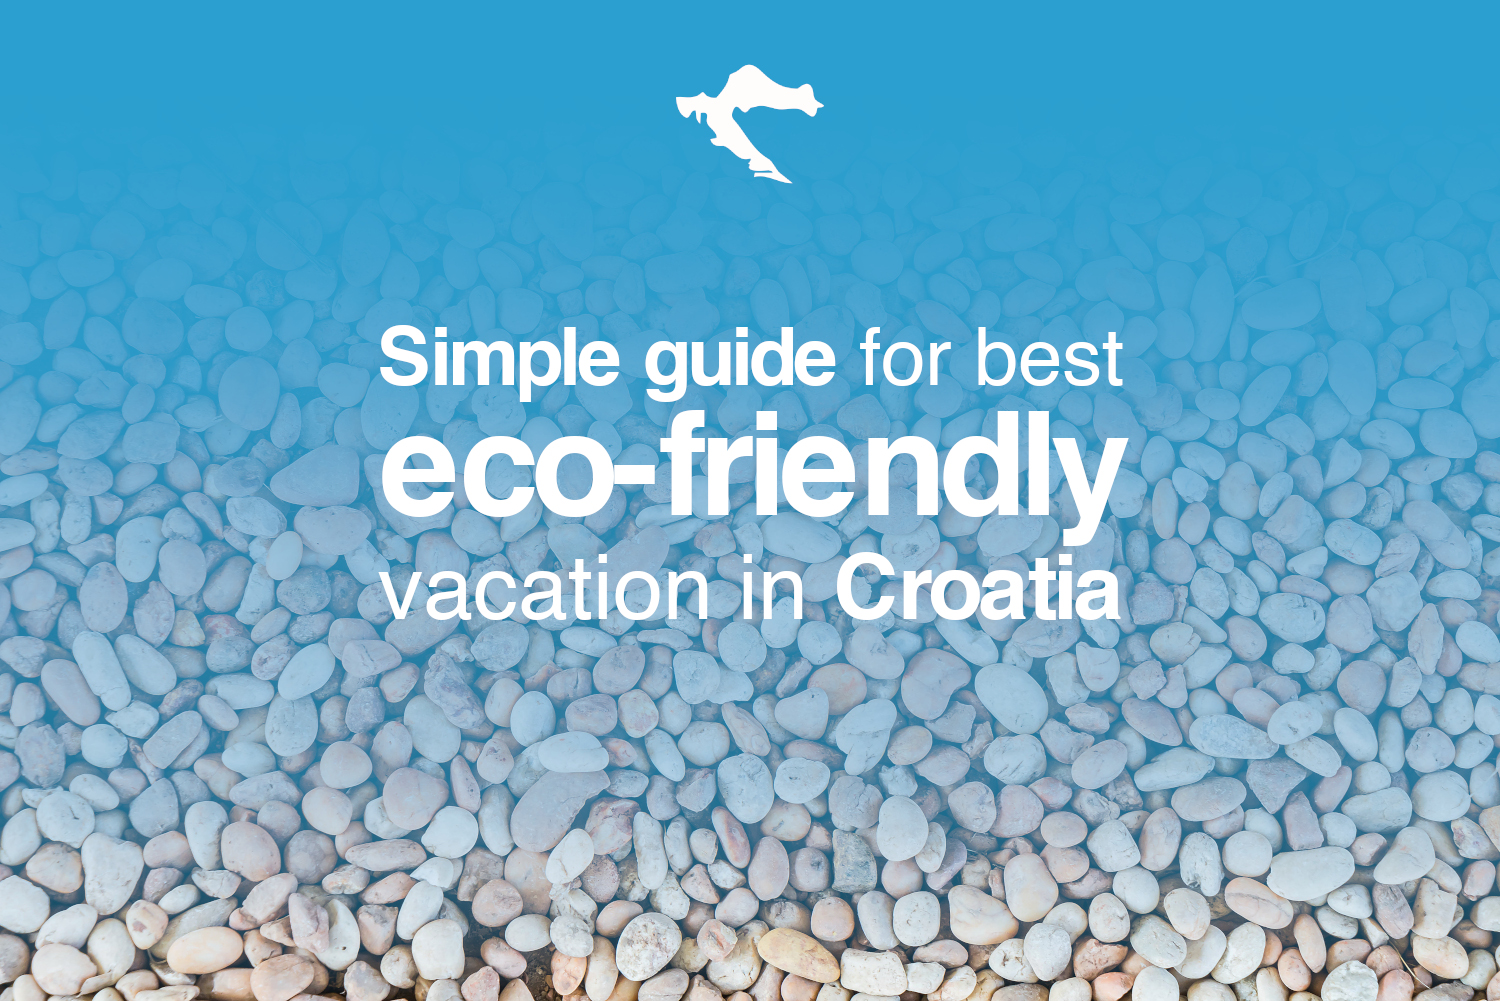 Simple guide for best eco-friendly vacation in Croatia